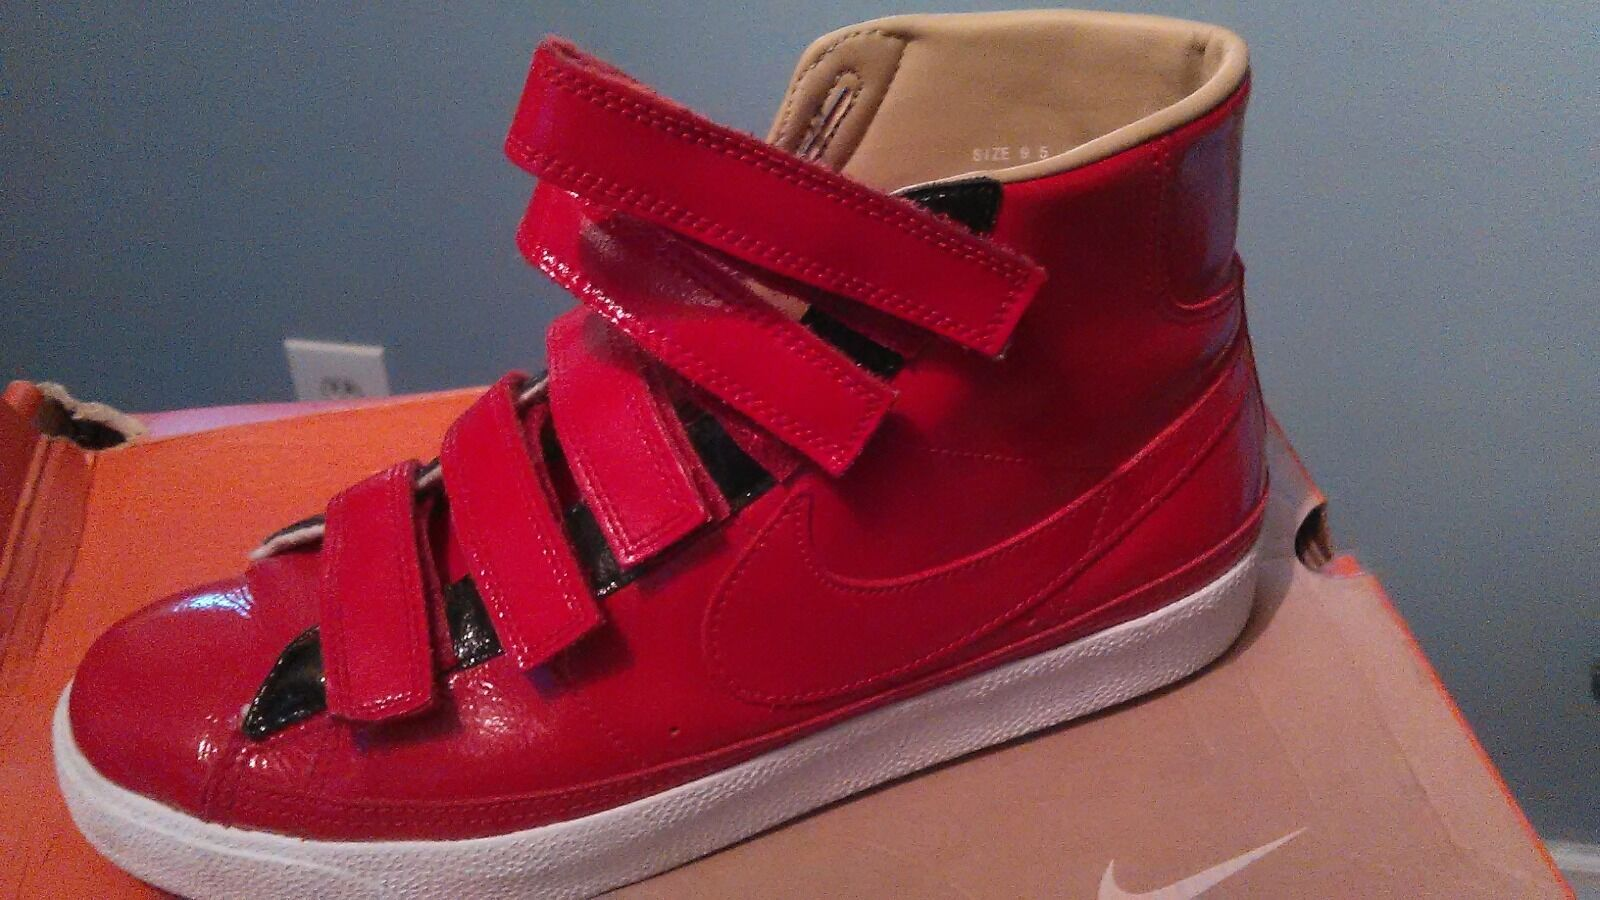 Nike Air Force 1 High Red Patent Basketball shoes Size 8.5 M